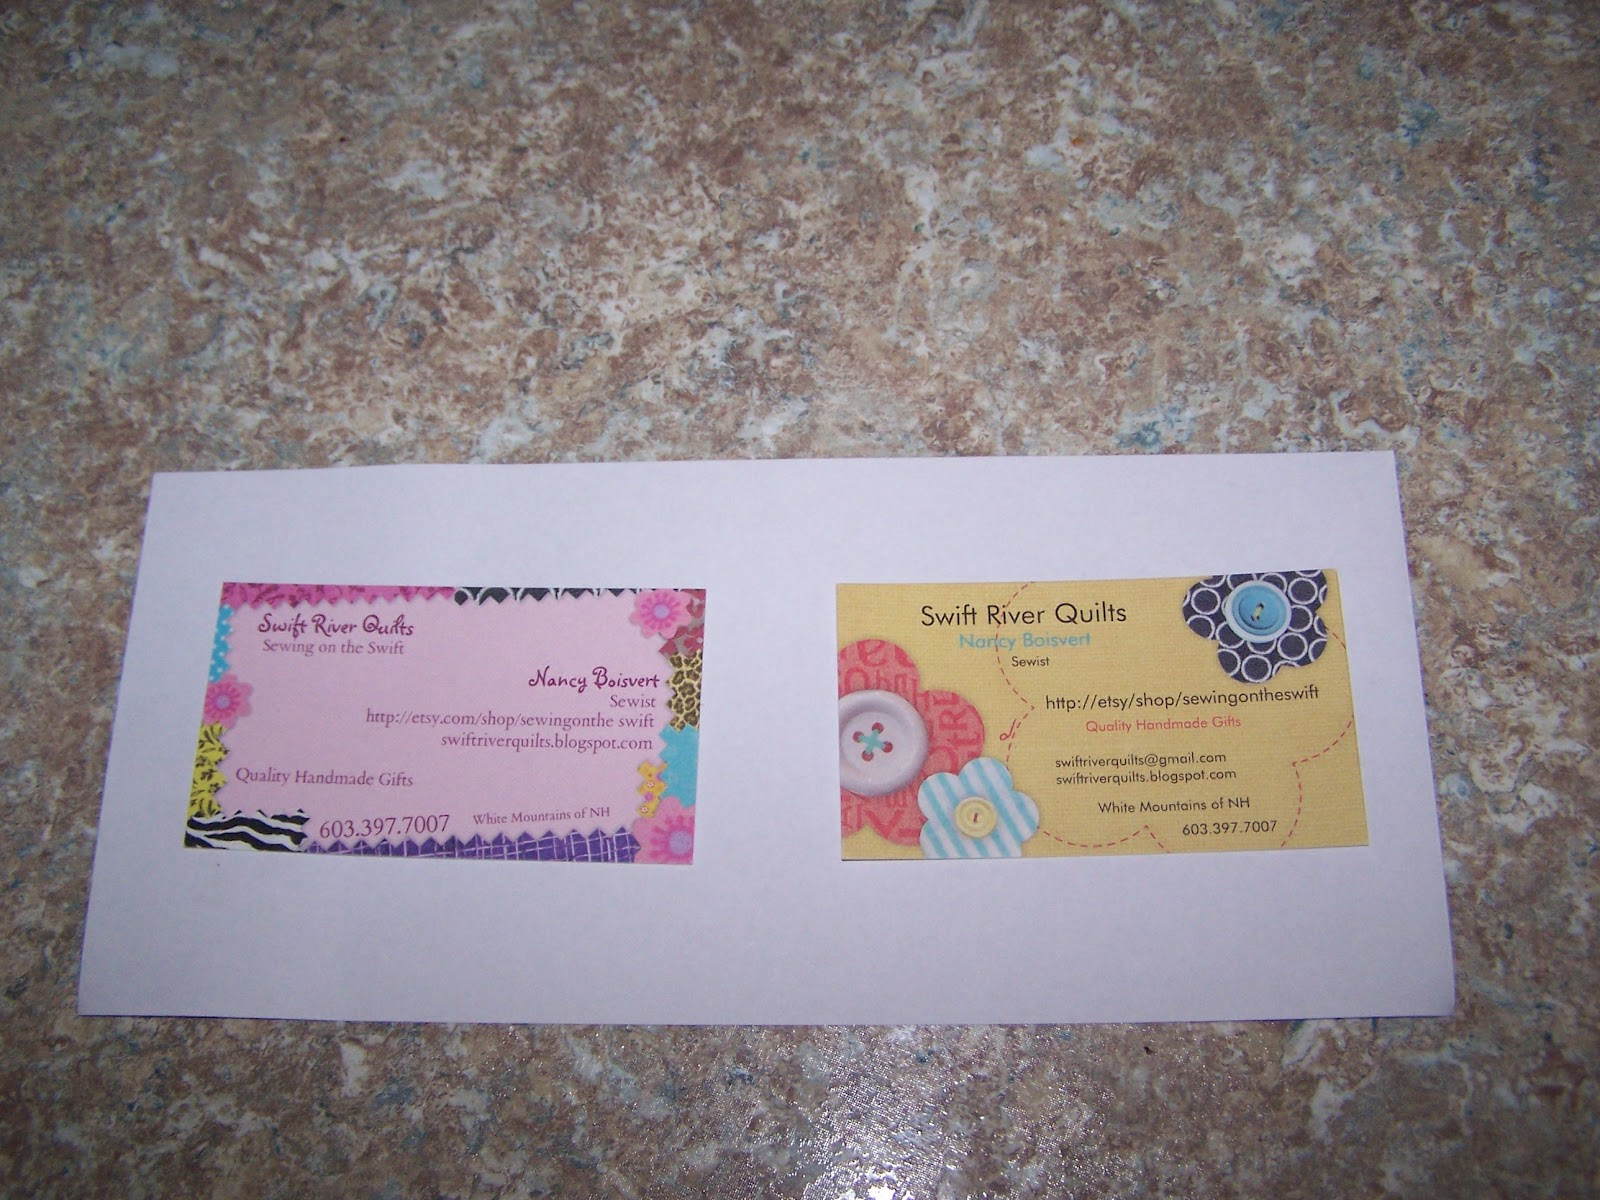 swiftriver quilting: UFO\'s, nora jean helps, business cards